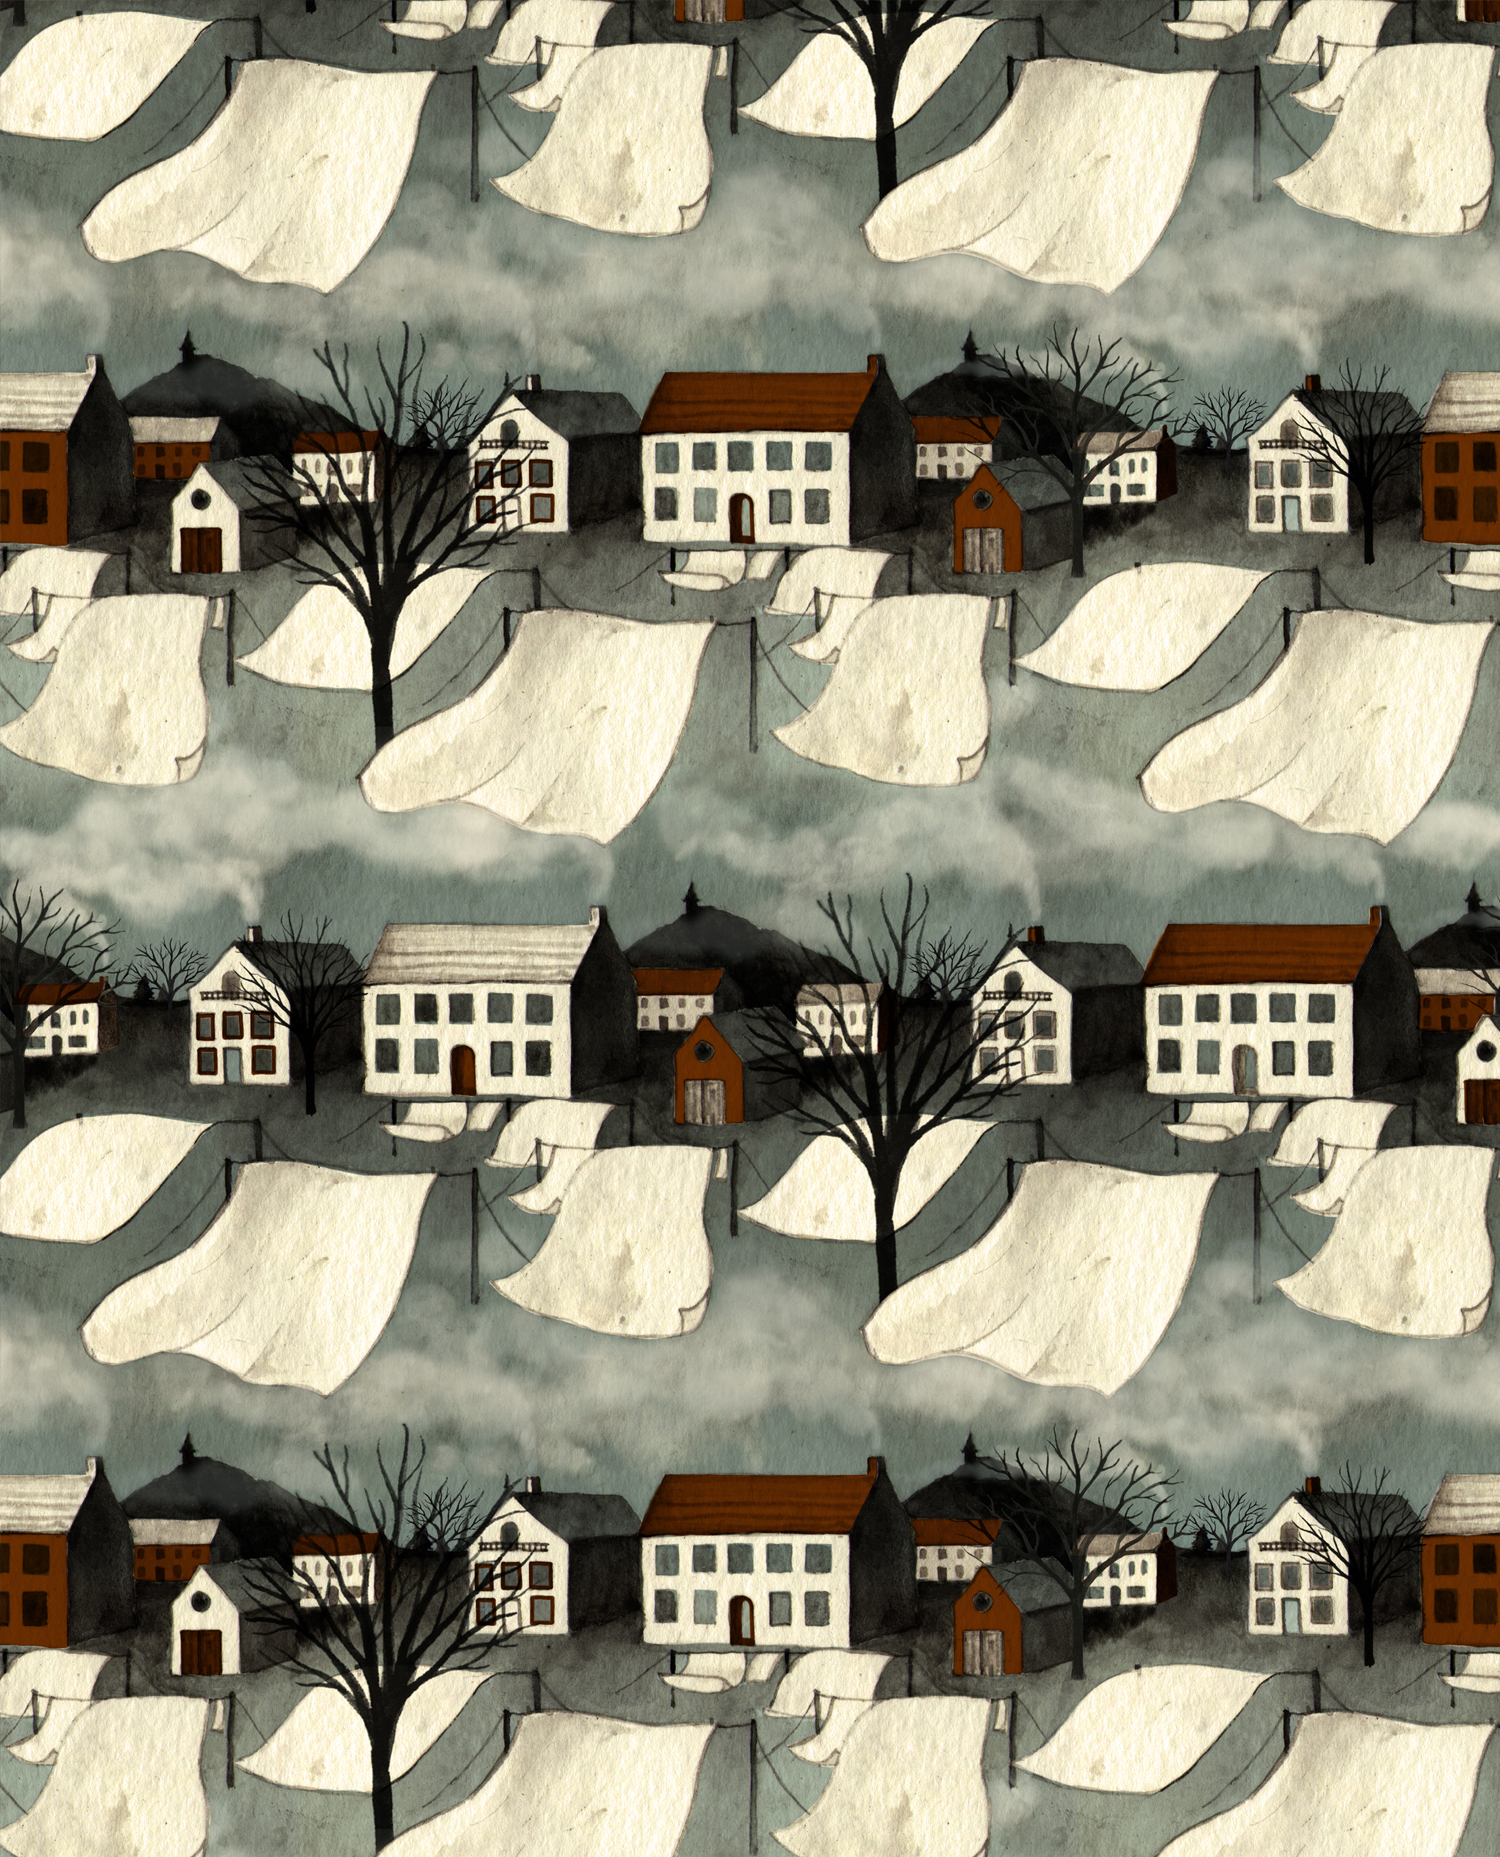 LInens and Houses_1500.jpg